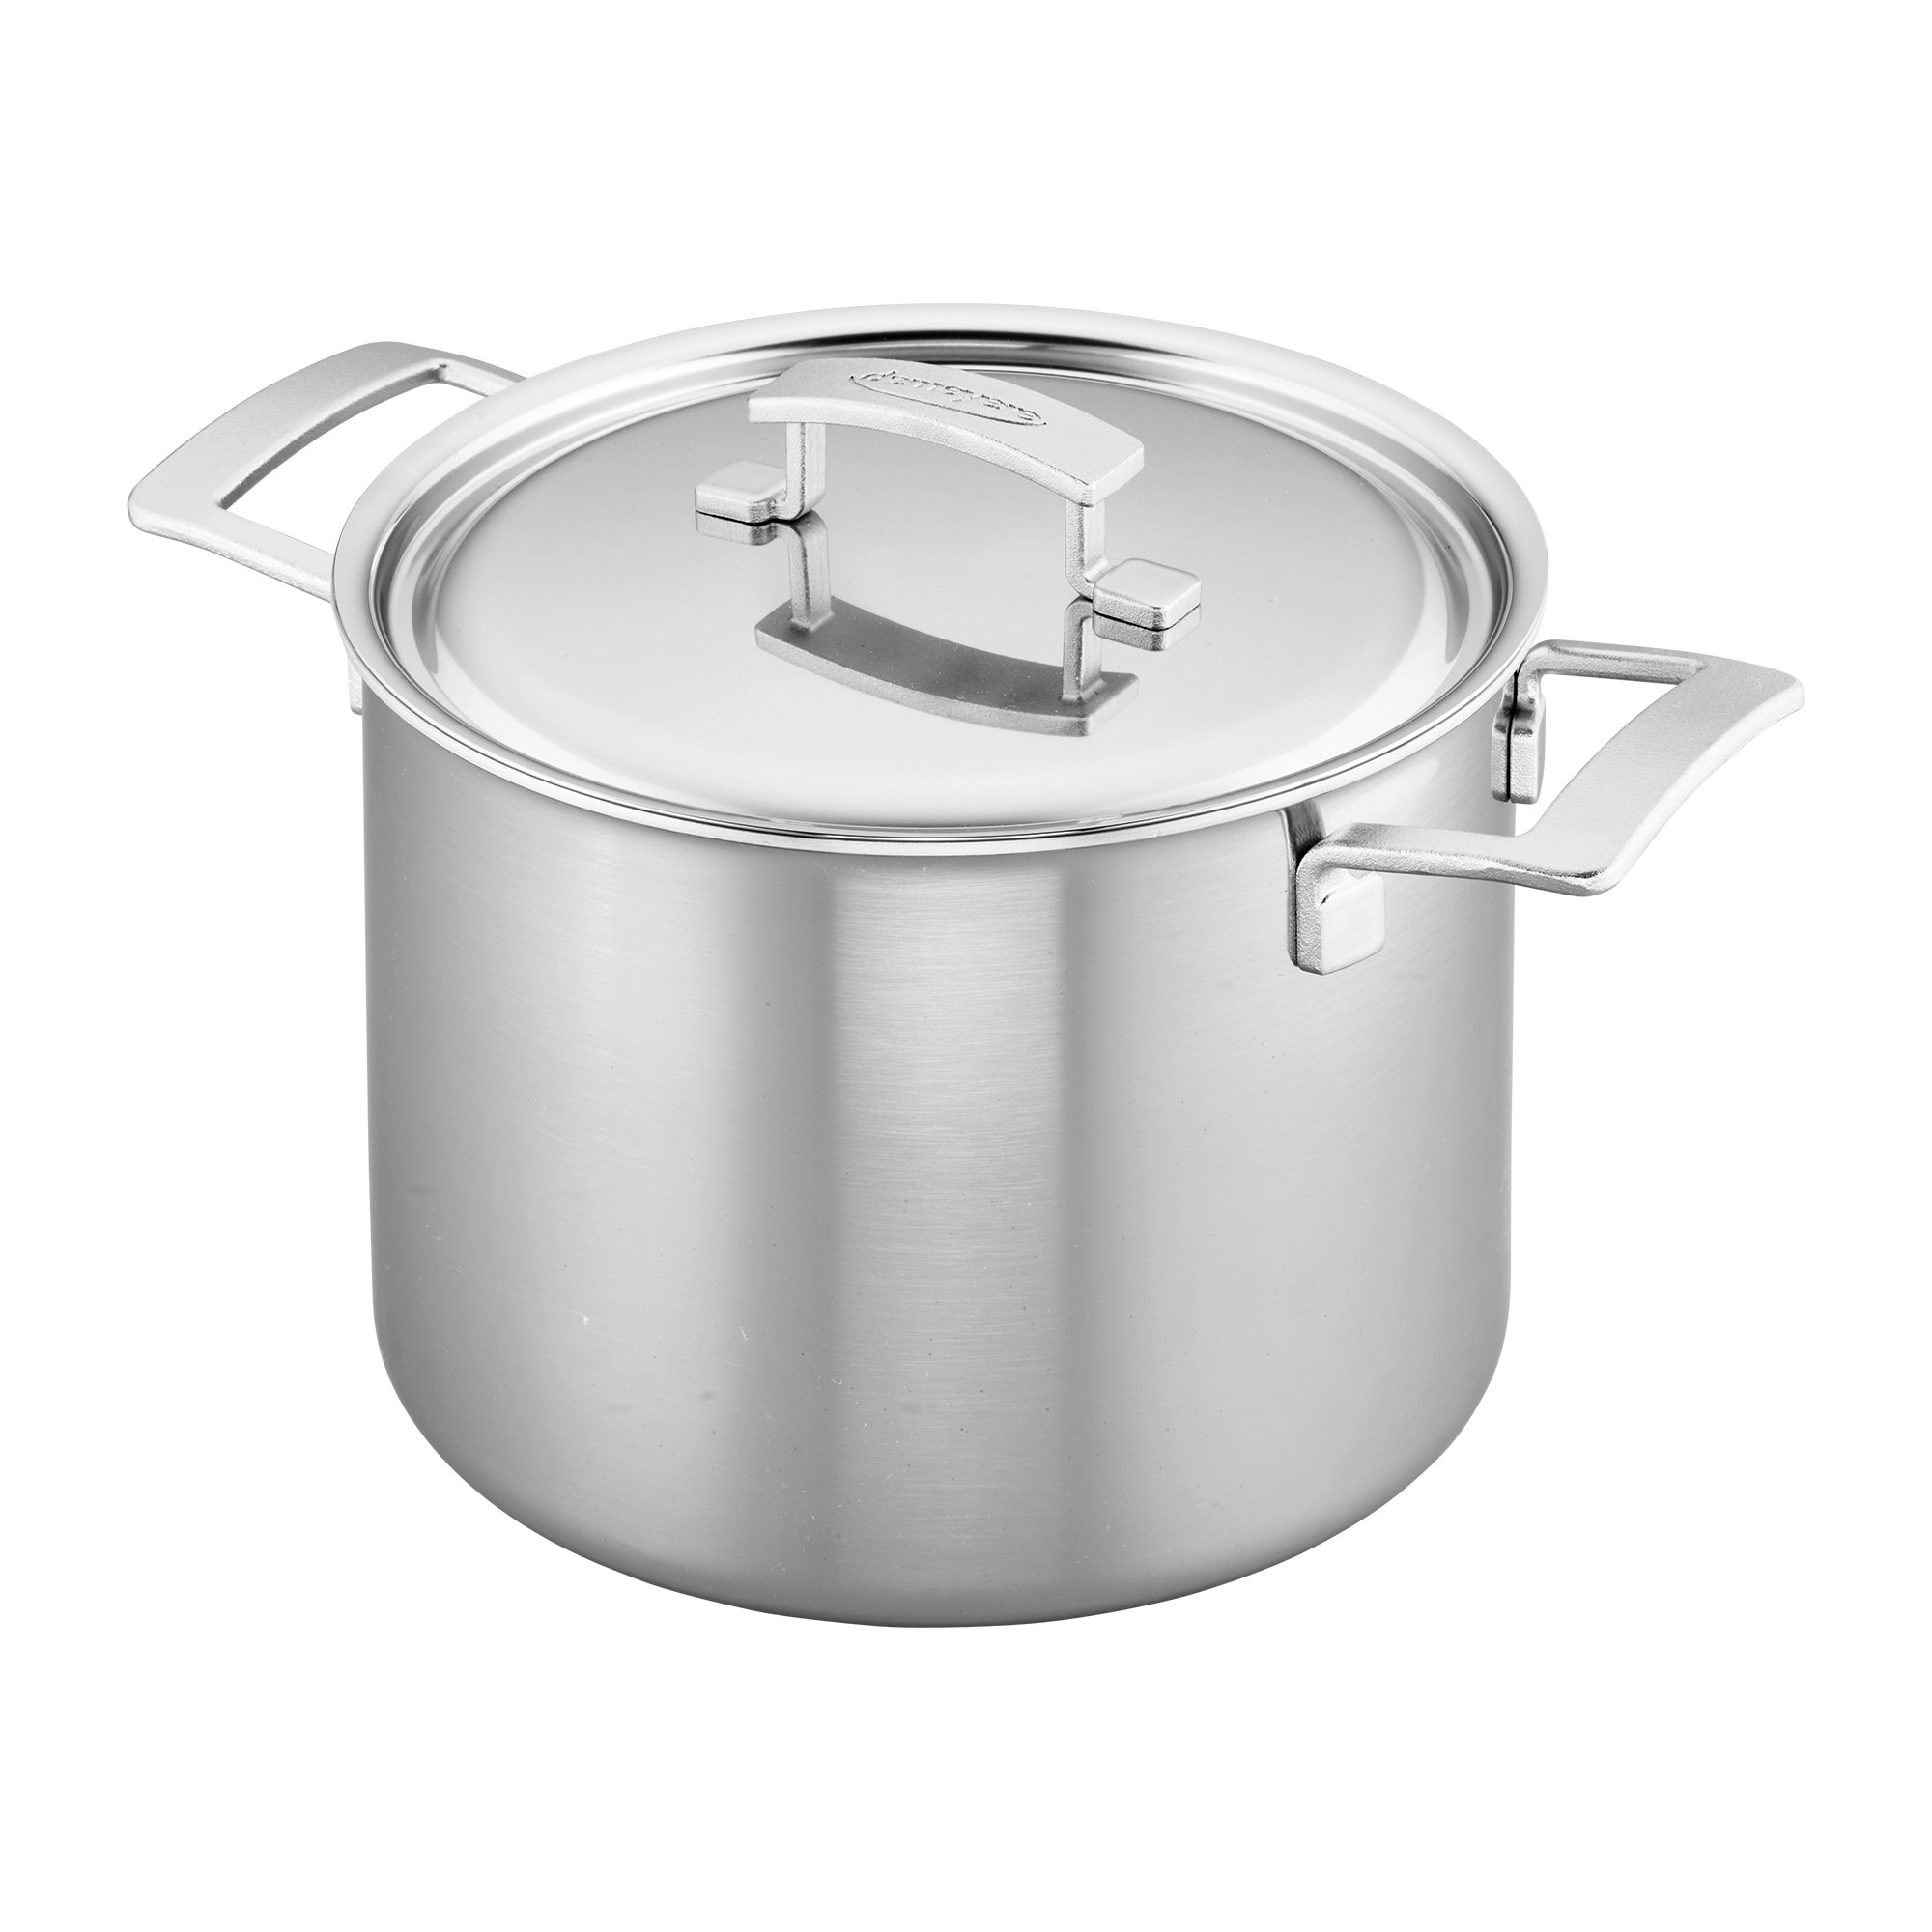 Demeyere Industry 5-Ply 8-qt Stainless Steel Stock Pot